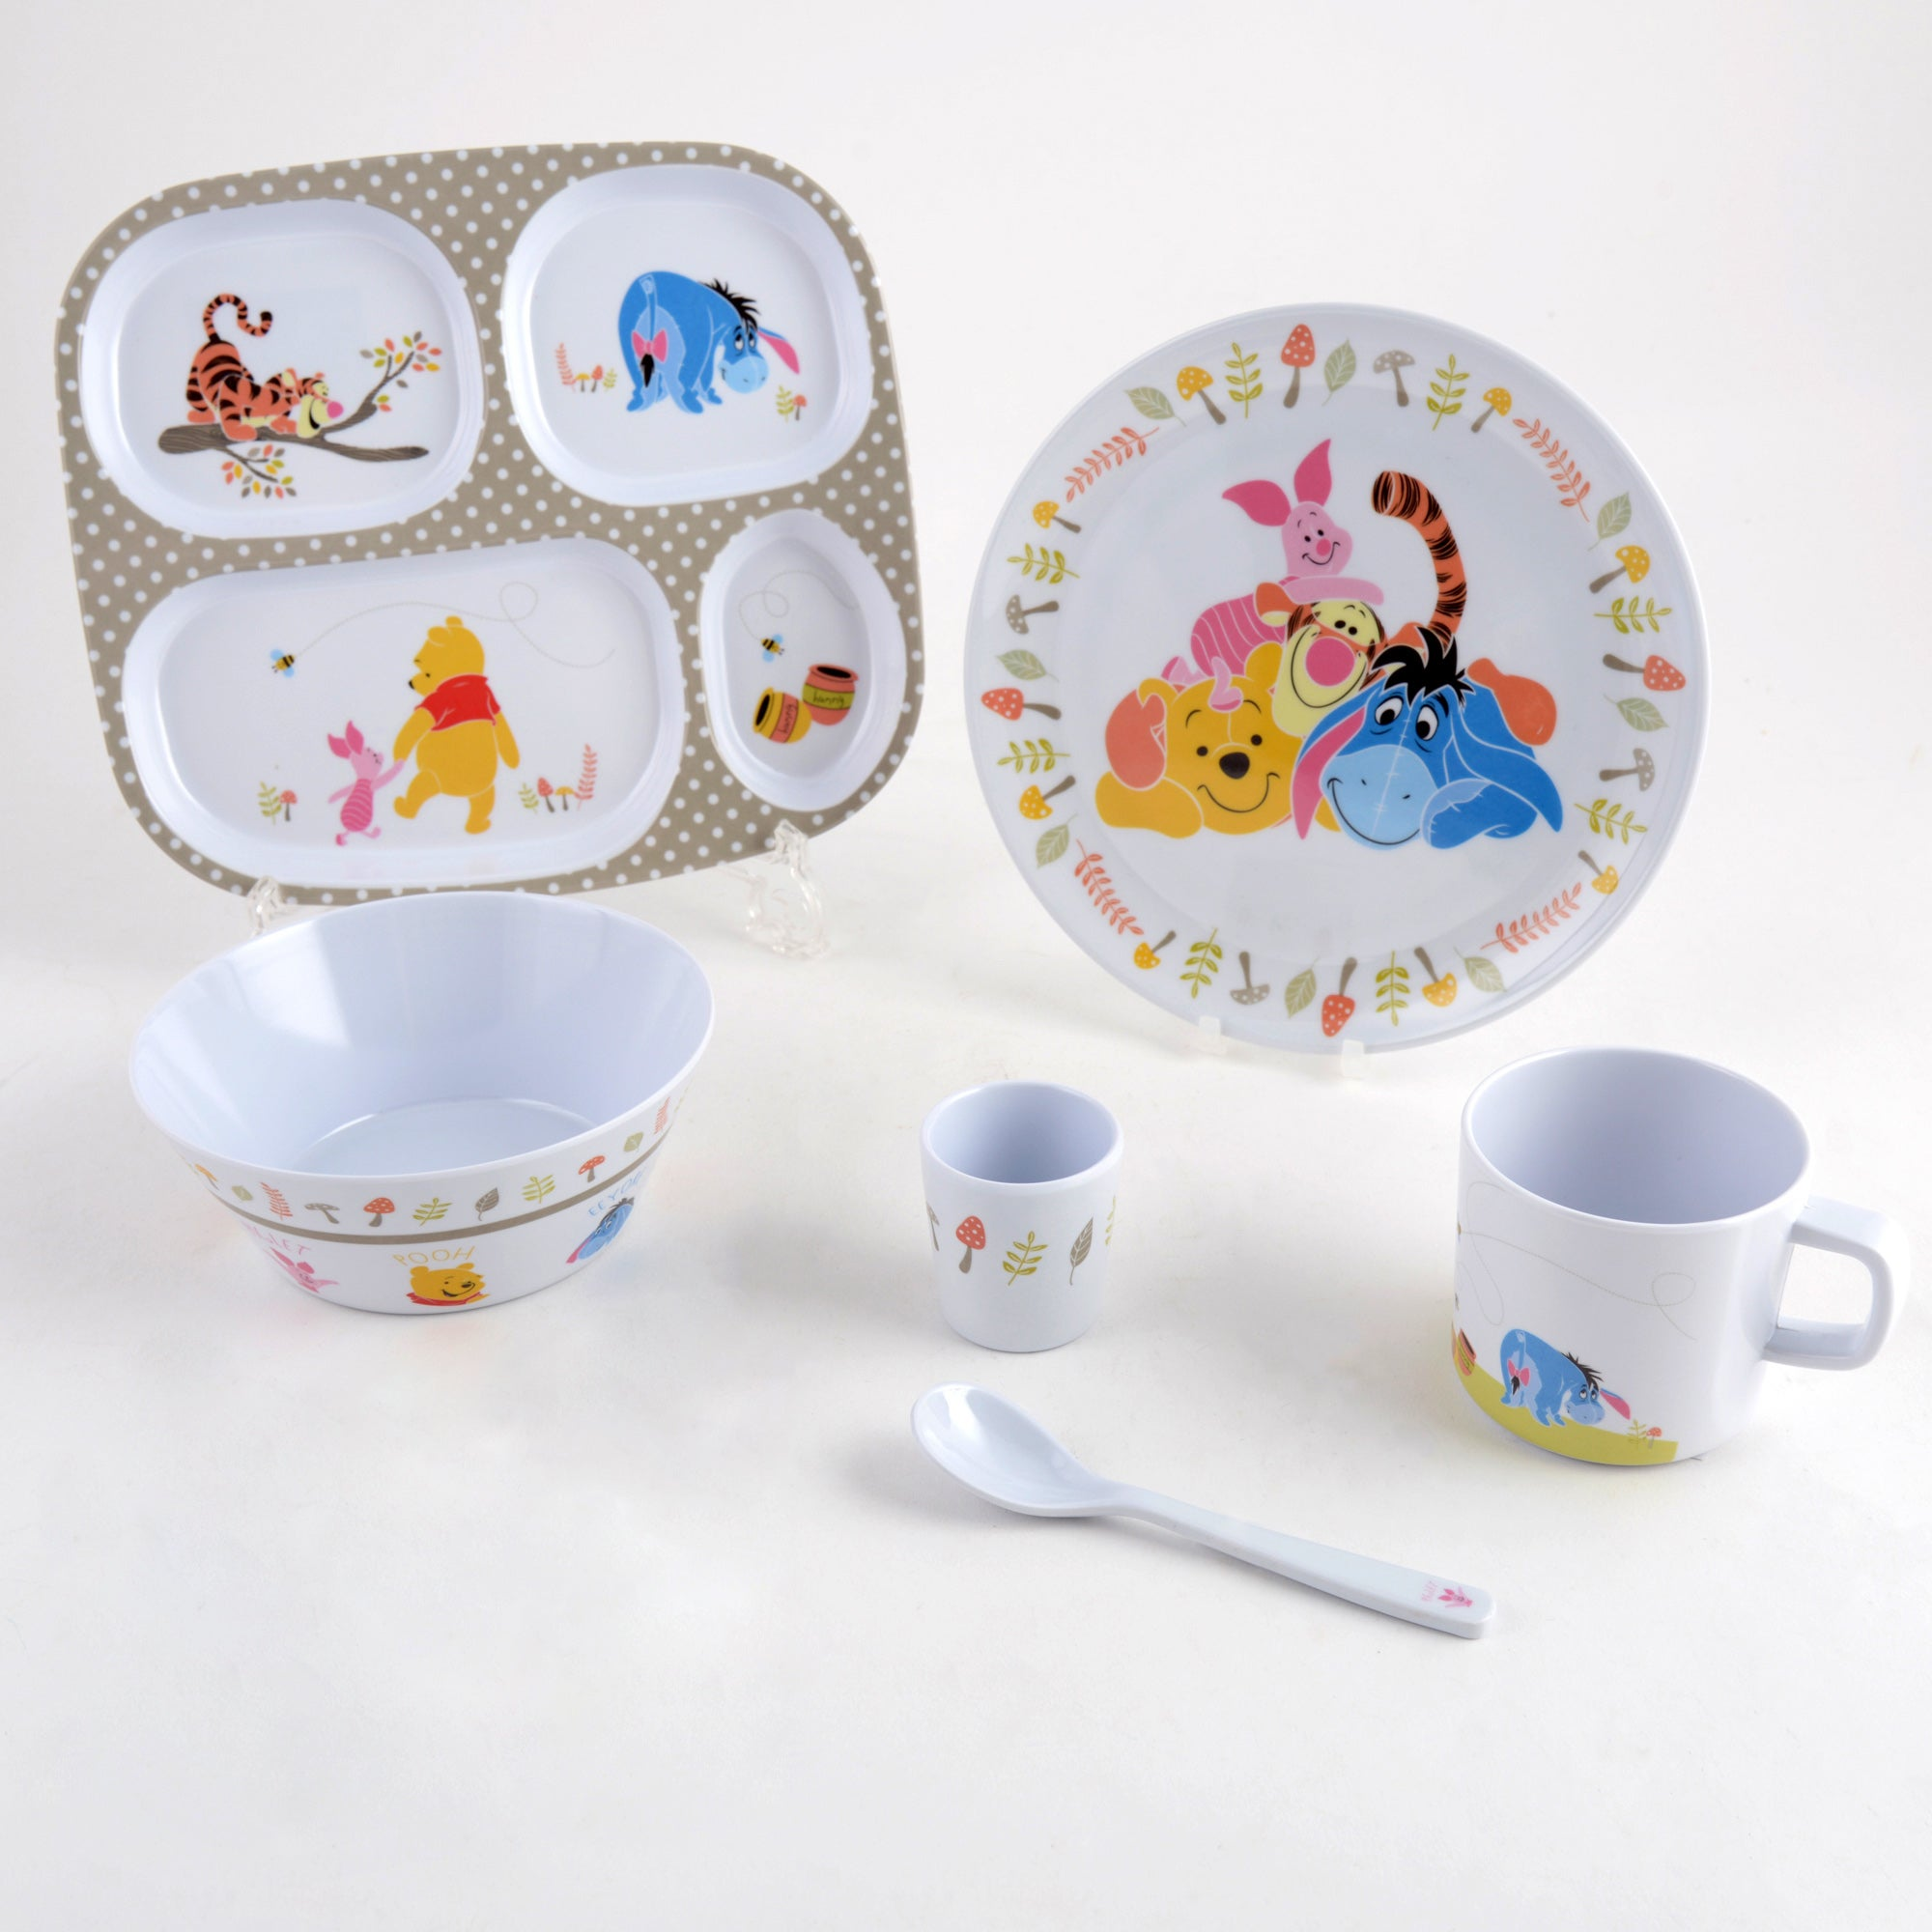 Disney Winnie the Pooh Dining Collection